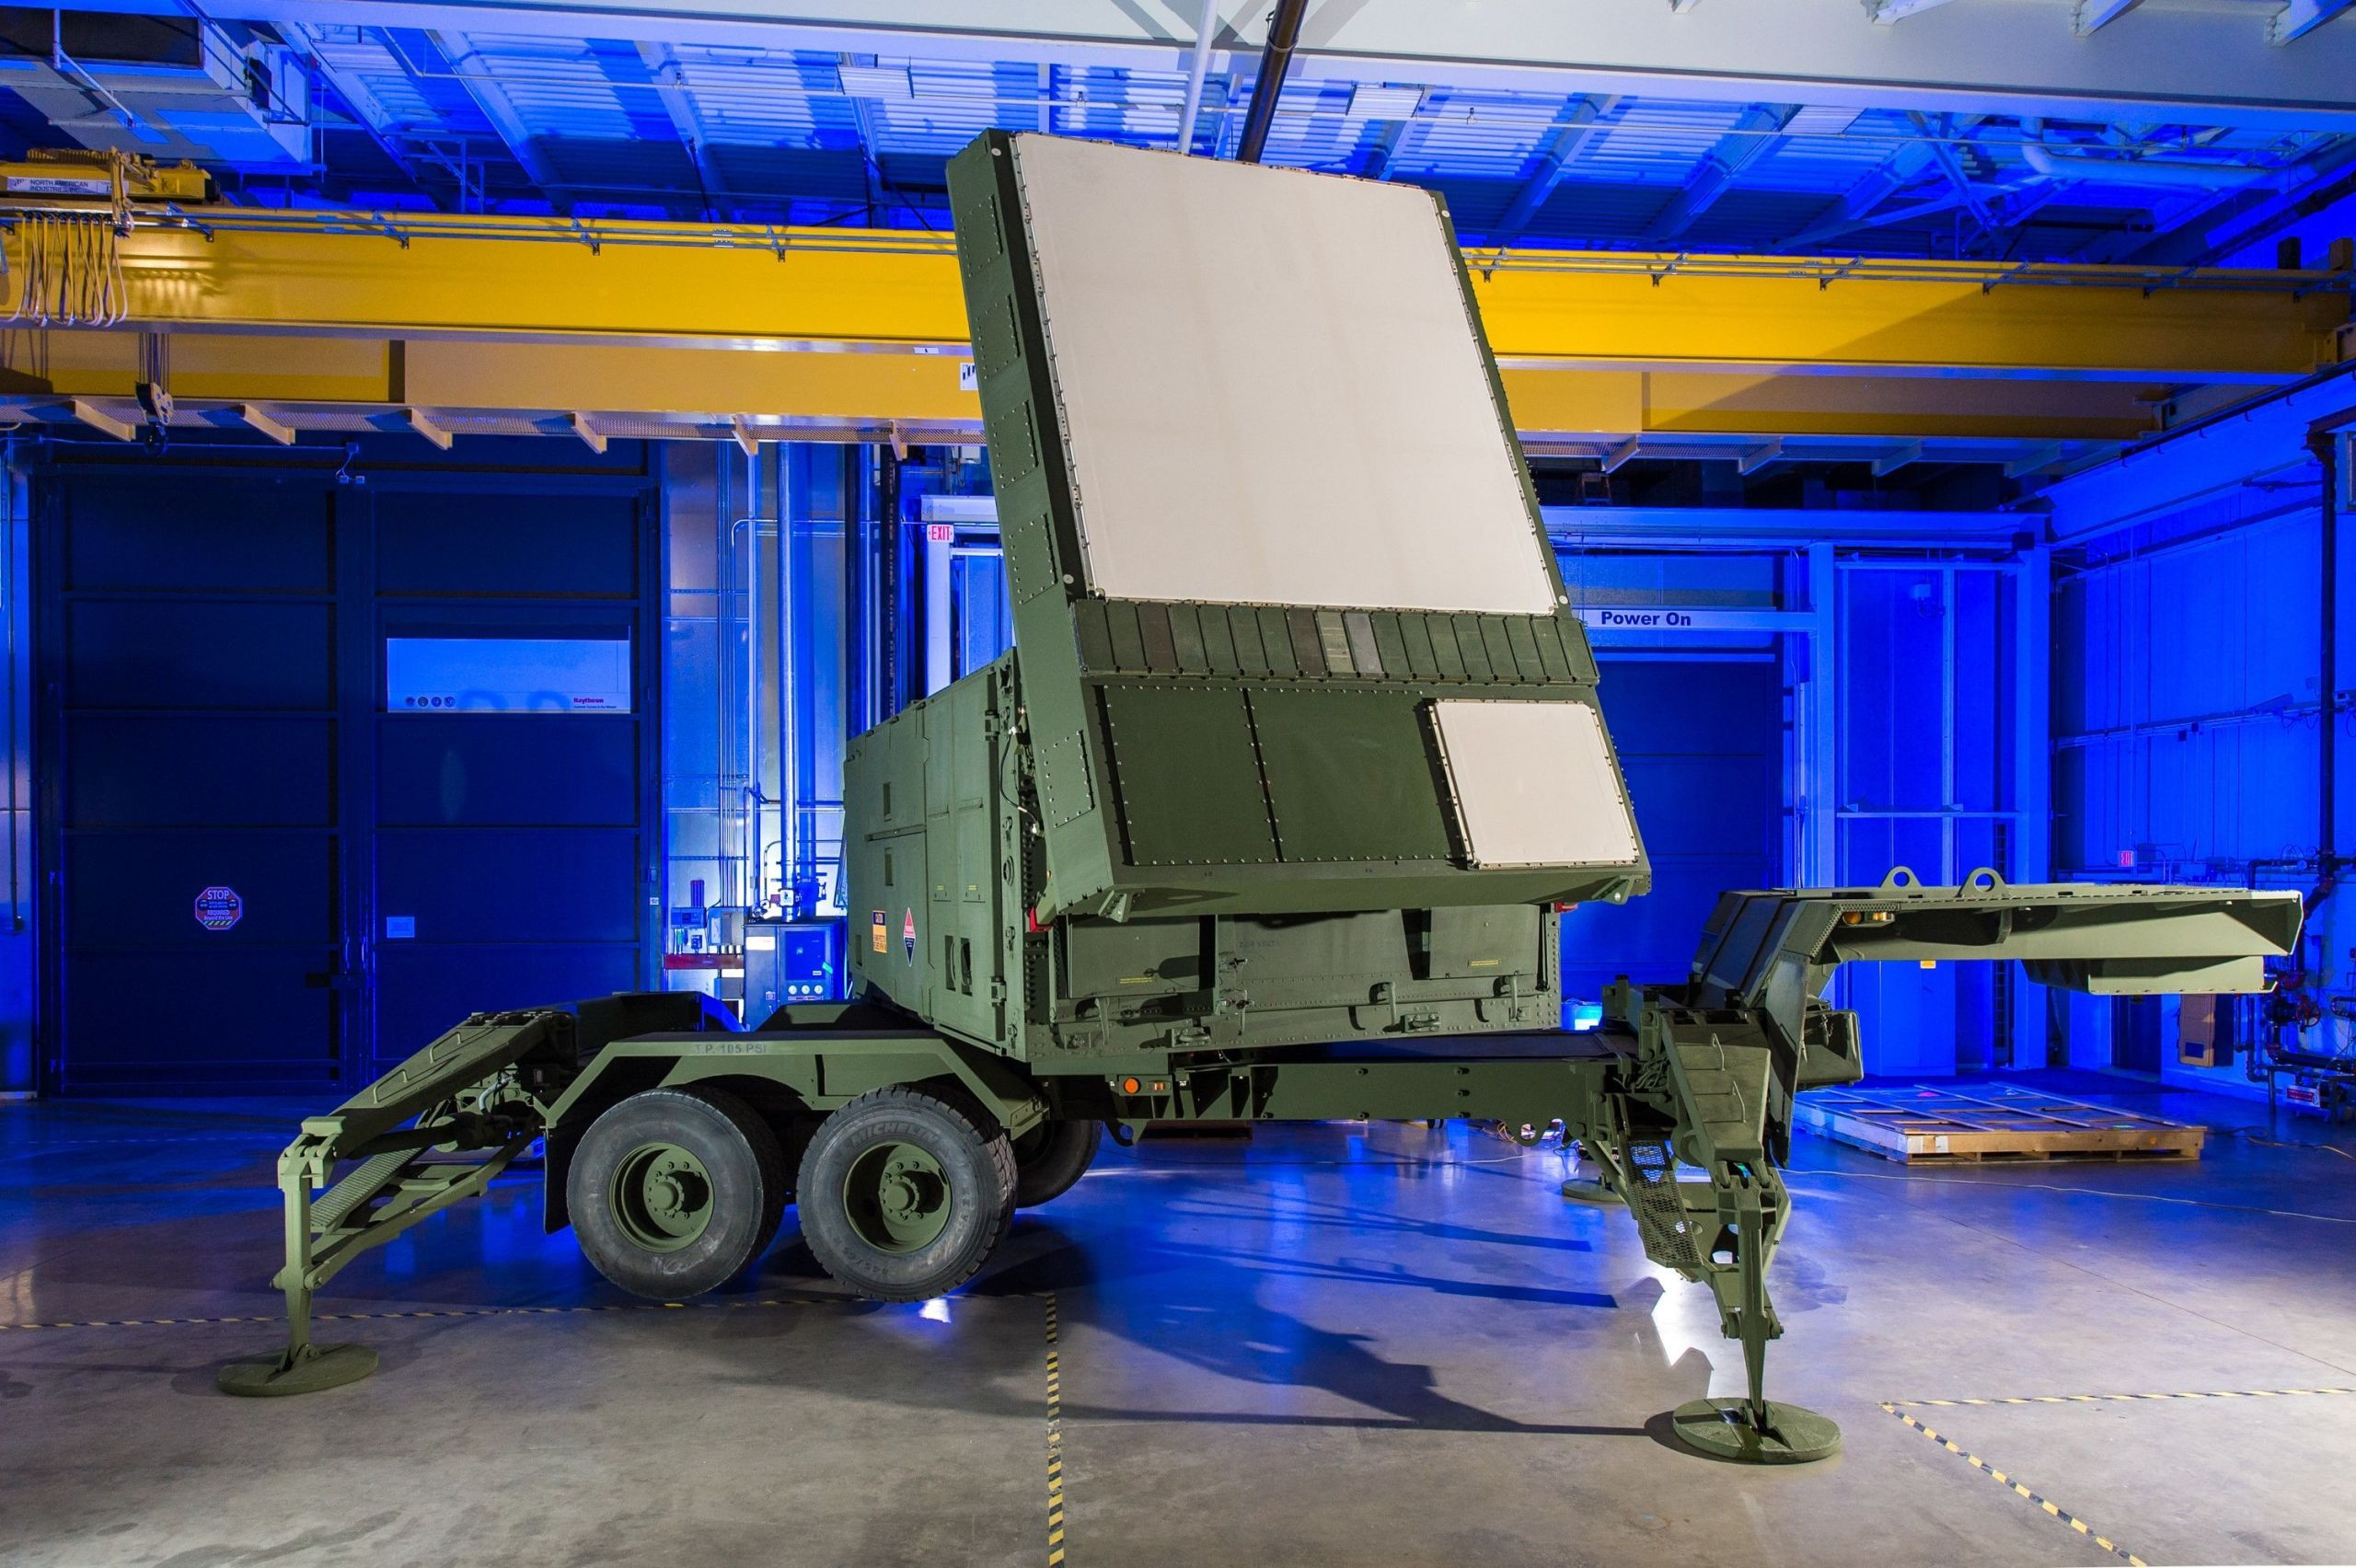 Raytheon's New Radar Tech Could Realize the Pentagon's Pain Ray